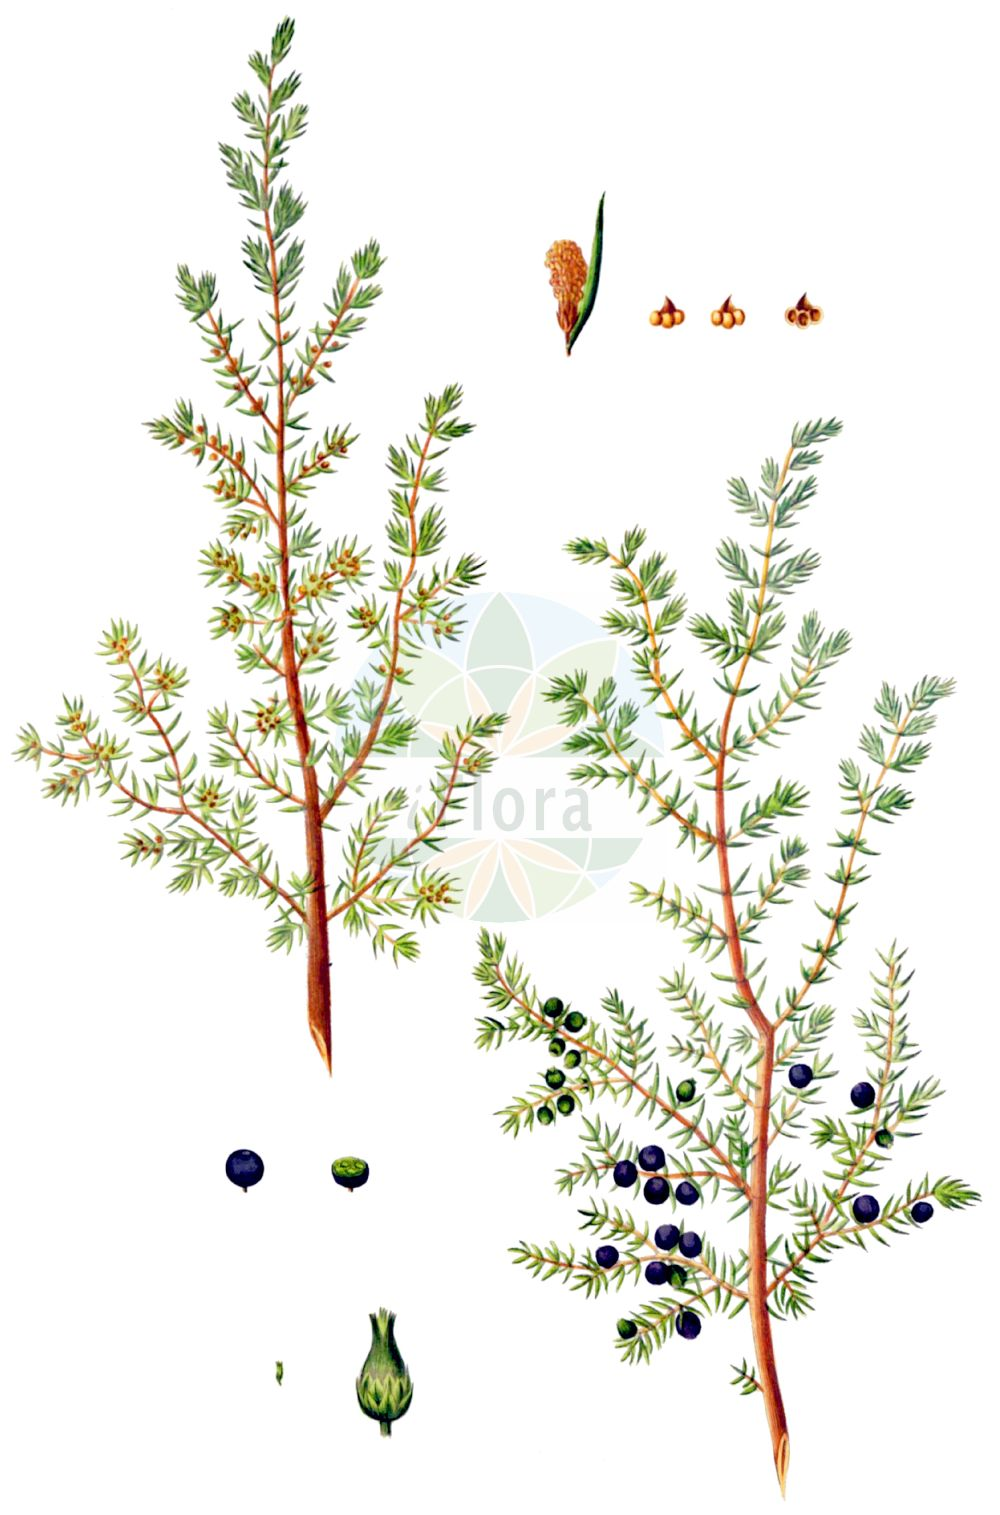 Historische Abbildung von Juniperus communis (Gewoehnlicher Wacholder - Common Juniper). Das Bild zeigt Blatt, Bluete, Frucht und Same. ---- Historical Drawing of Juniperus communis (Gewoehnlicher Wacholder - Common Juniper).The image is showing leaf, flower, fruit and seed.(Juniperus communis,Gewoehnlicher Wacholder,Common Juniper,Juniperus communis,Juniperus intermedia,Gewoehnlicher Wacholder,Gewoehnlicher Heide-Wacholder,Common Juniper,Juniper,Juniperus,Wacholder,Juniper,Cupressaceae,Zypressengewaechse,Cypress family,Blatt,Bluete,Frucht,Same,leaf,flower,fruit,seed,Oeder (1761-1883))